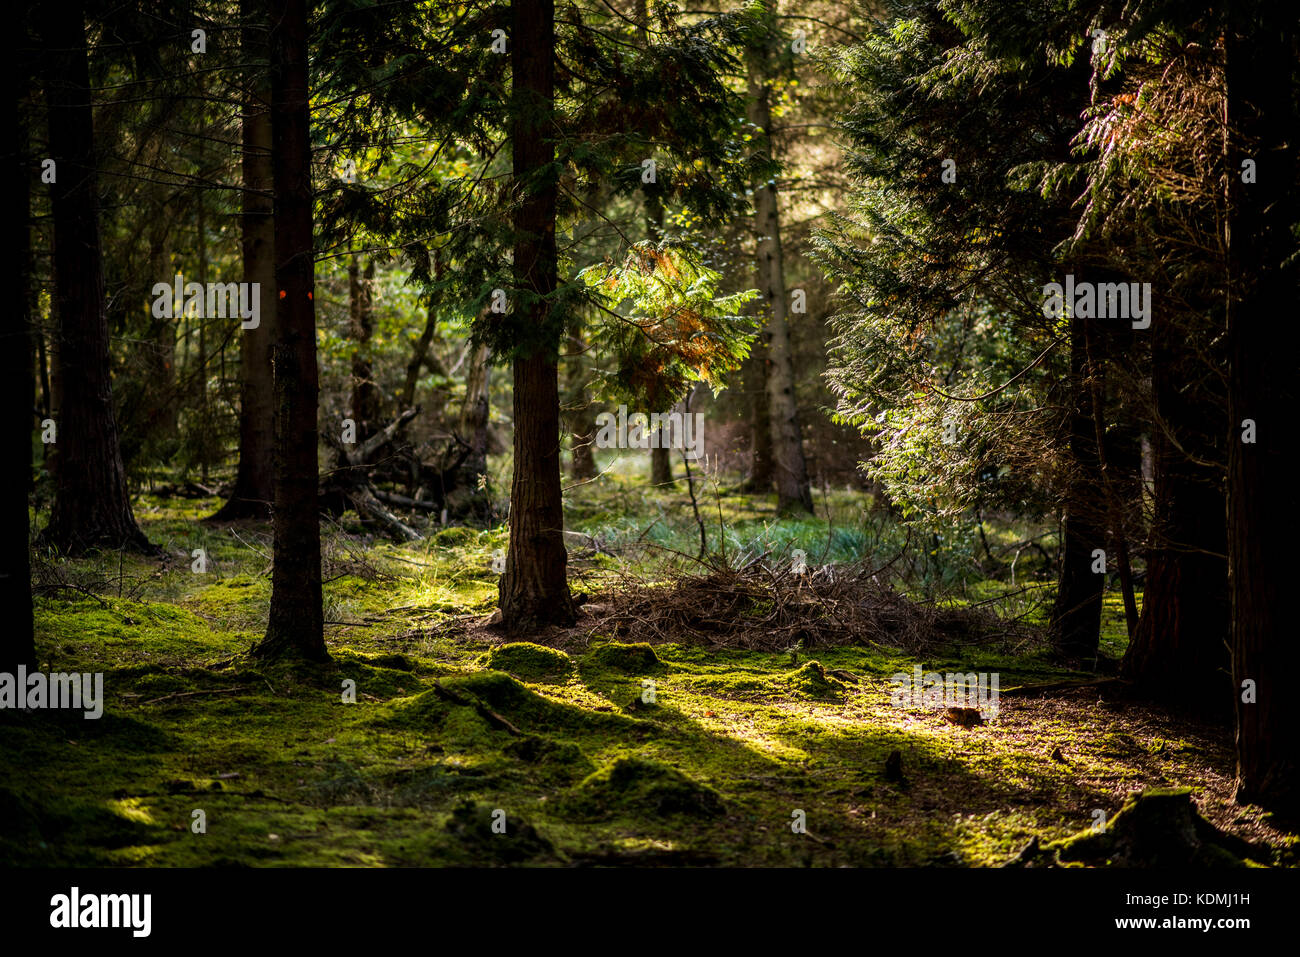 Sunset through Woodland Landscape with moss covered floor, UK - Stock Image